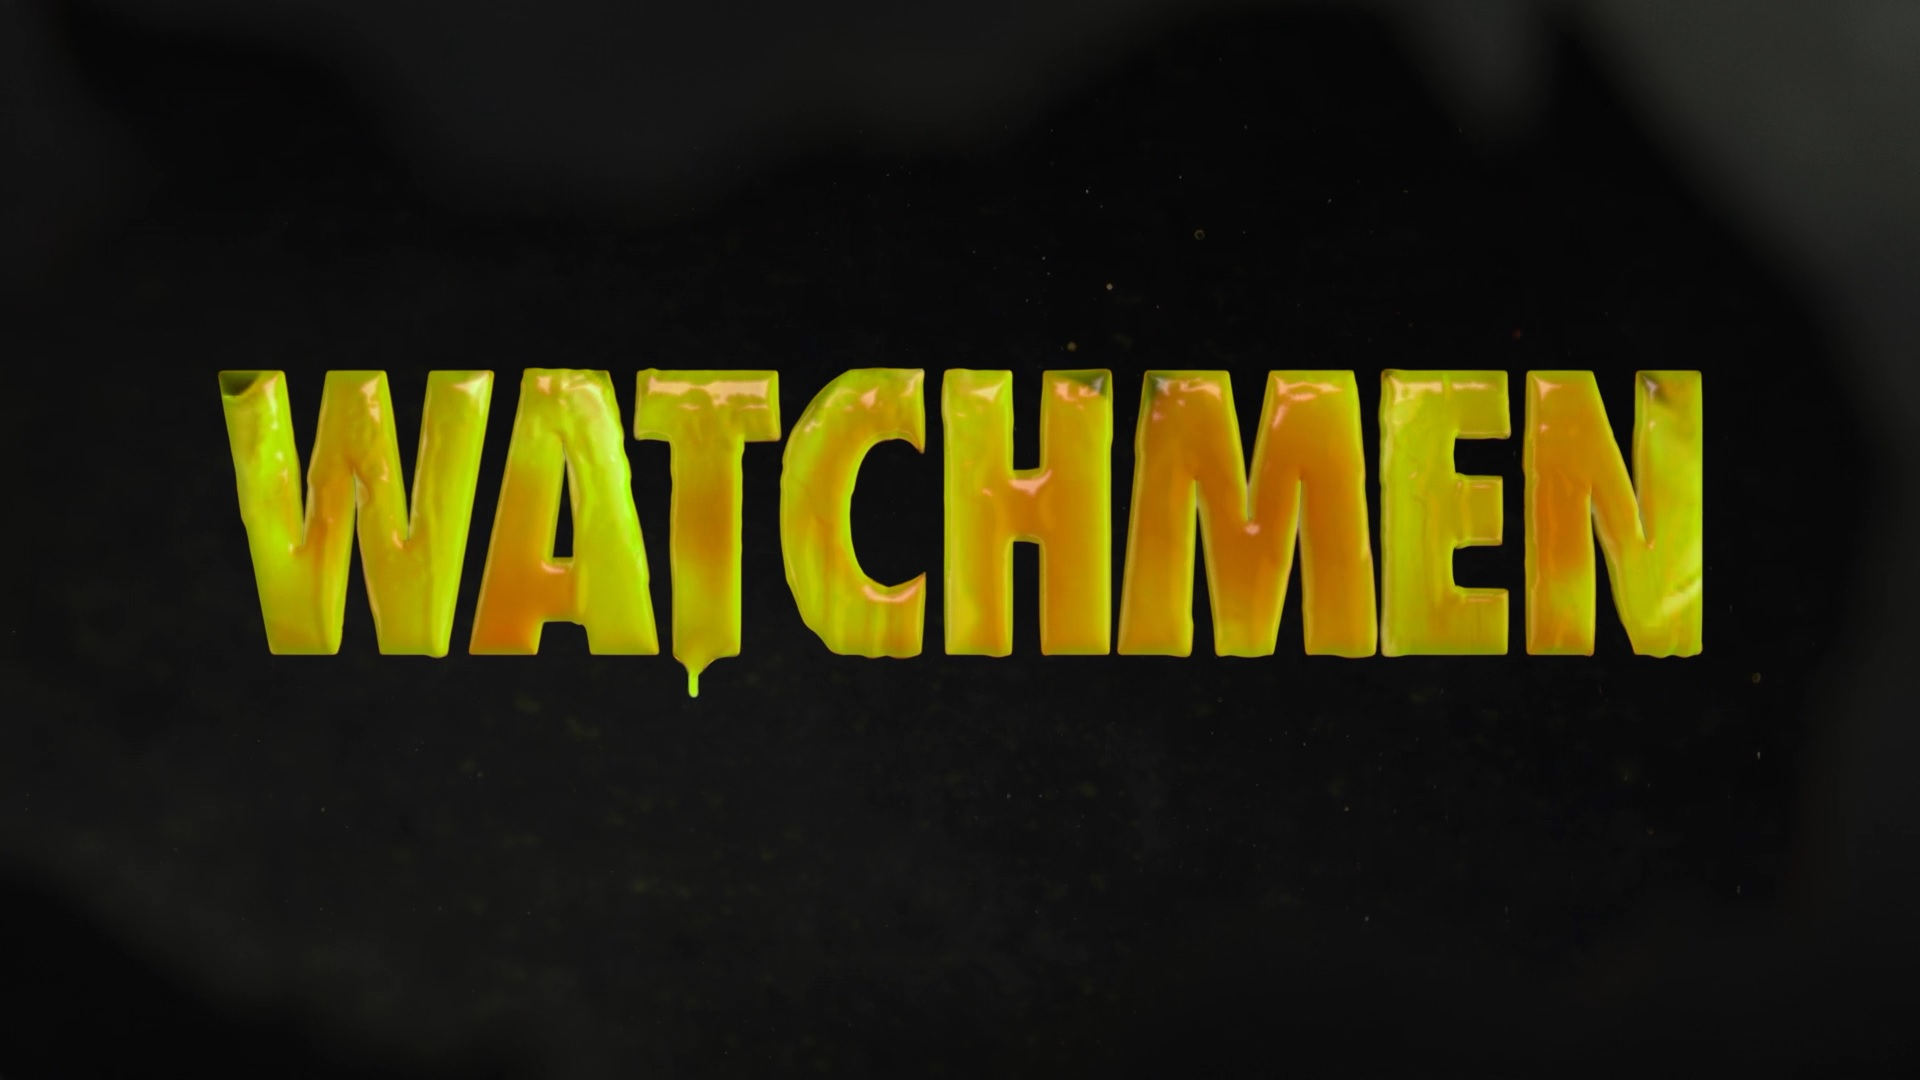 Watchmen (TV Series) Episode: If You Don't Like My Story, Write Your Own